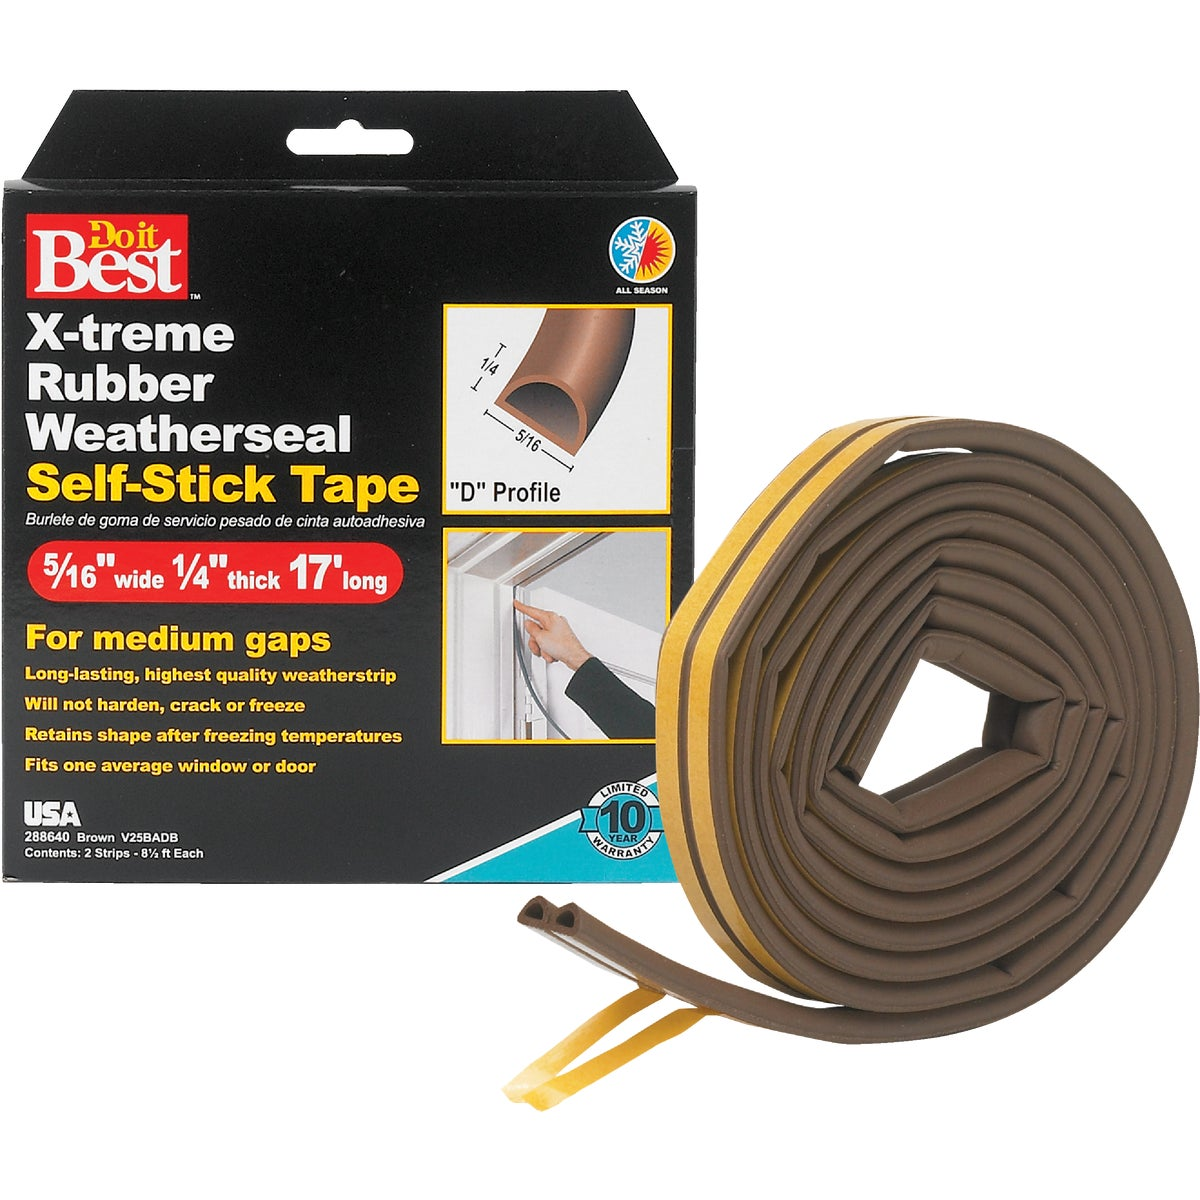 "5/16X1/4""X17' BRN TAPE - V25BADB by Thermwell Prods Co"